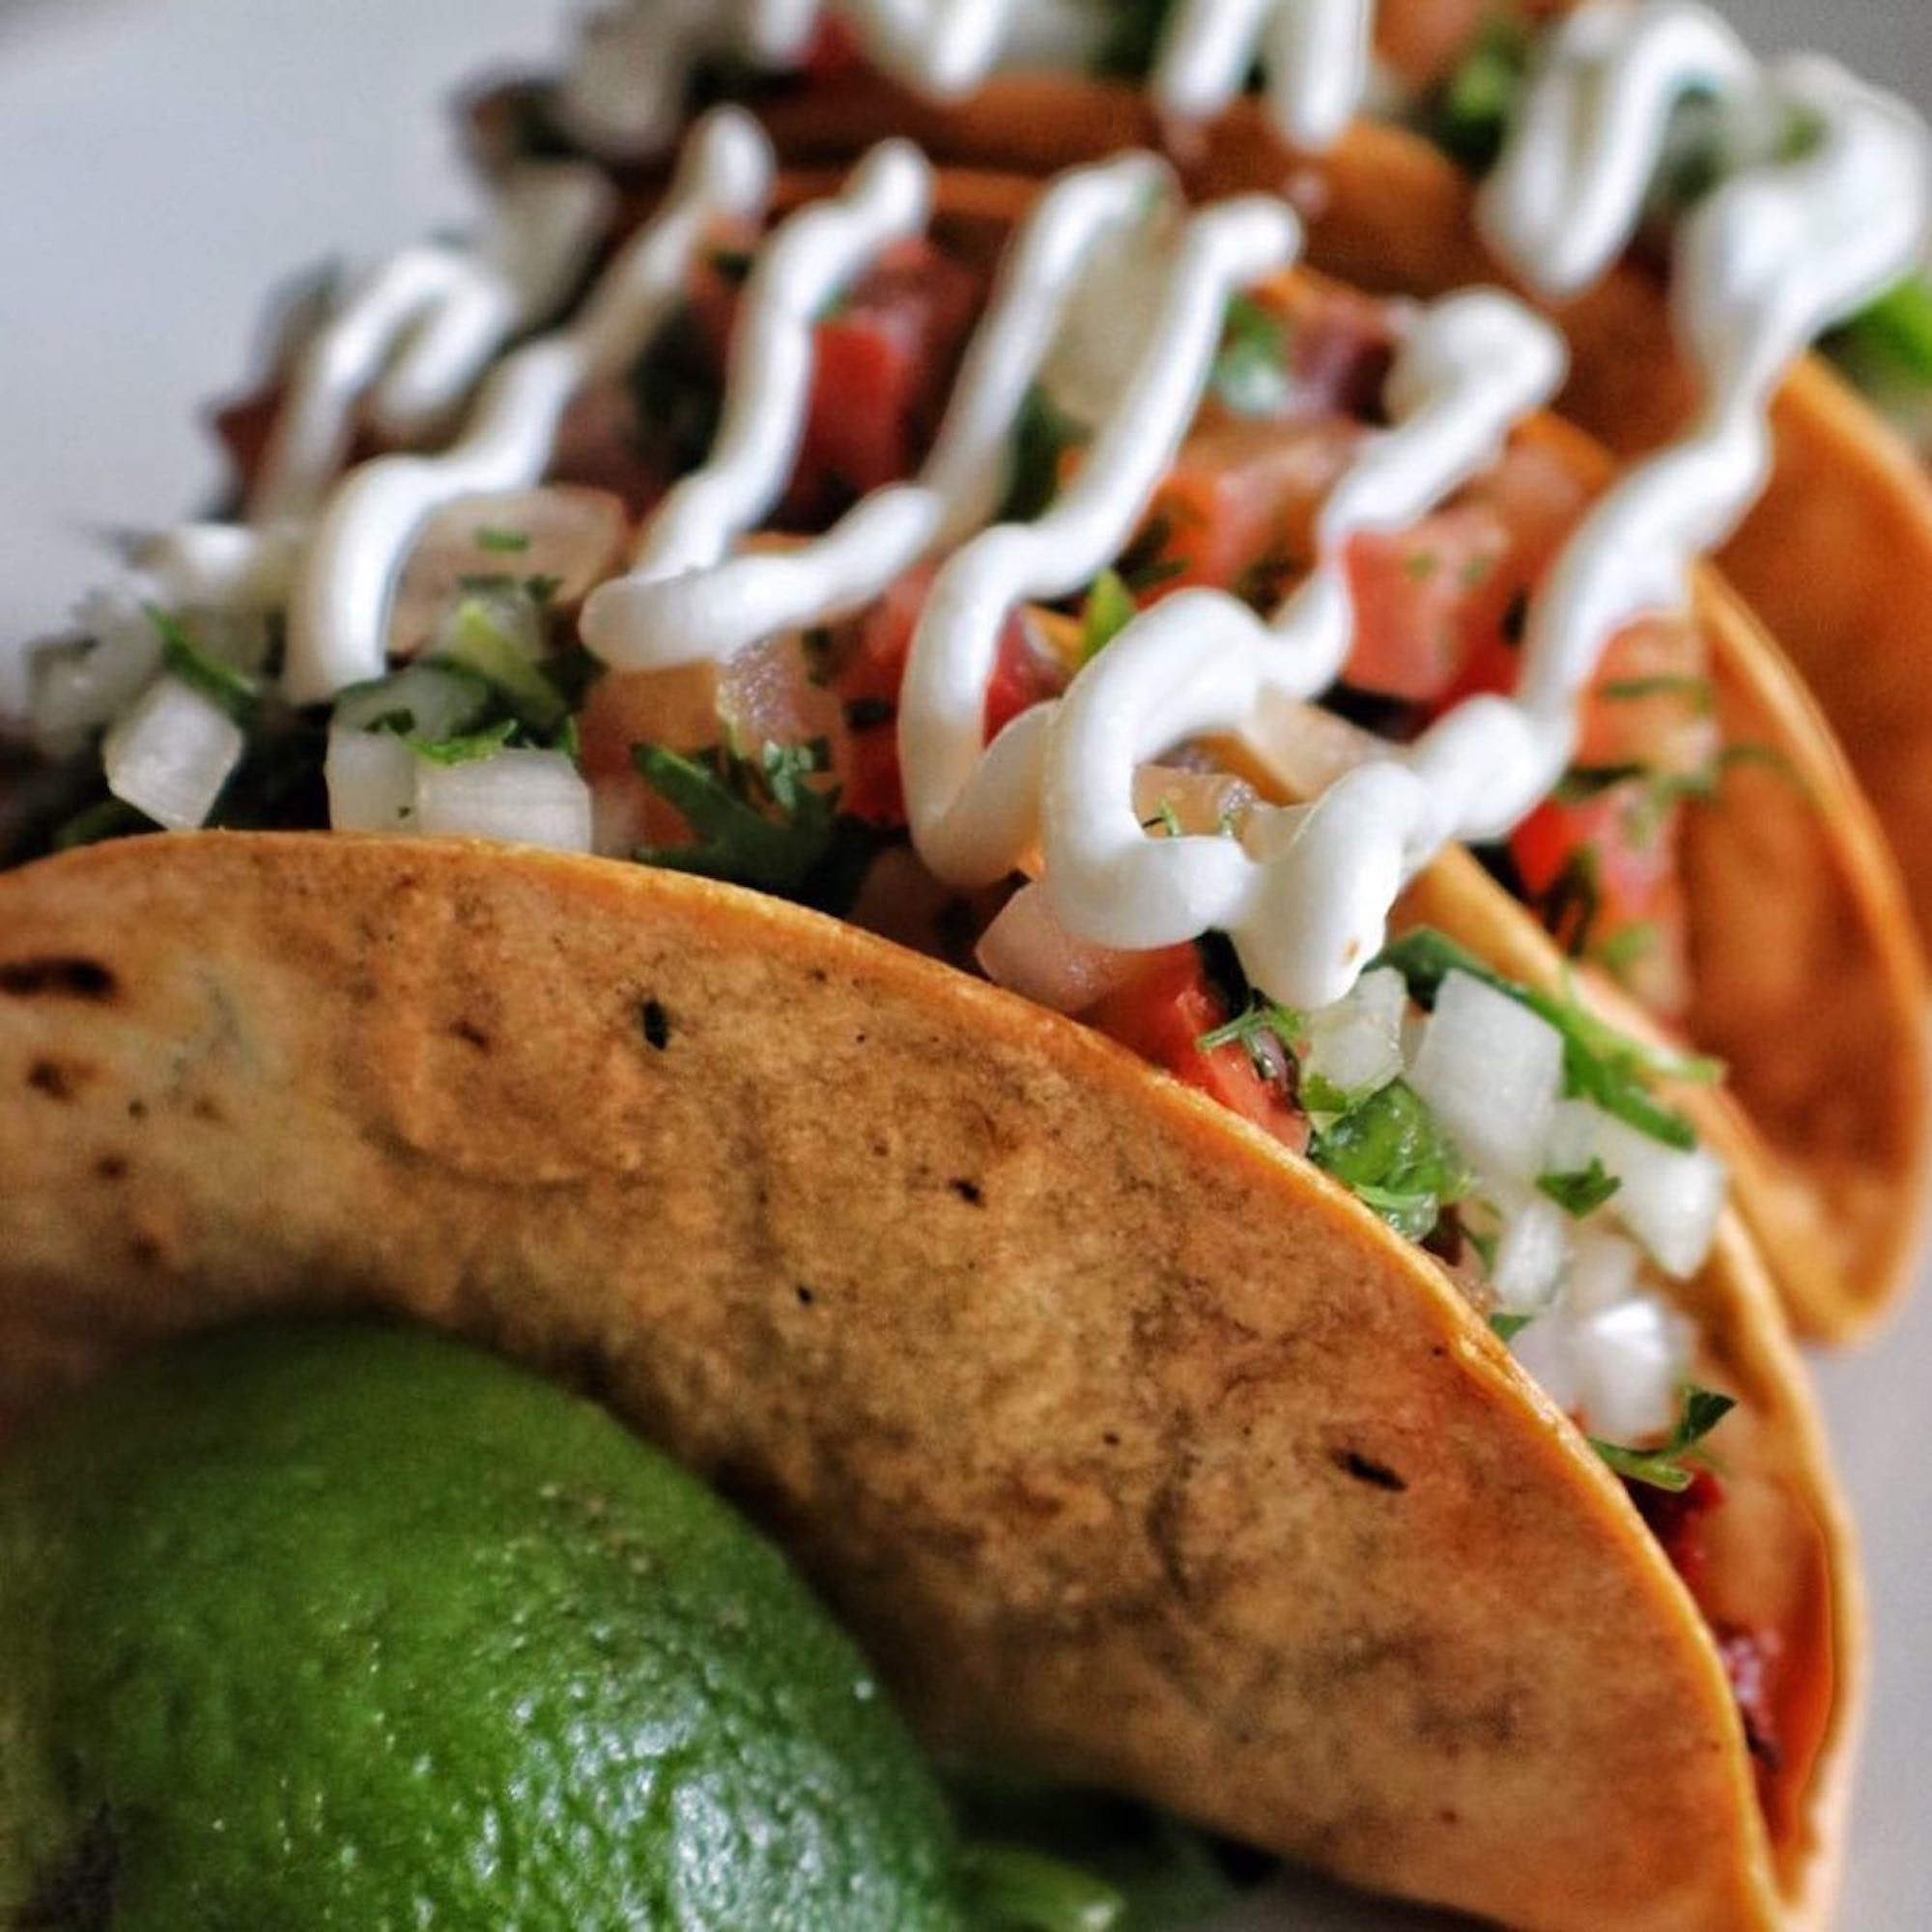 Free stock photo of food, dining, Tacos